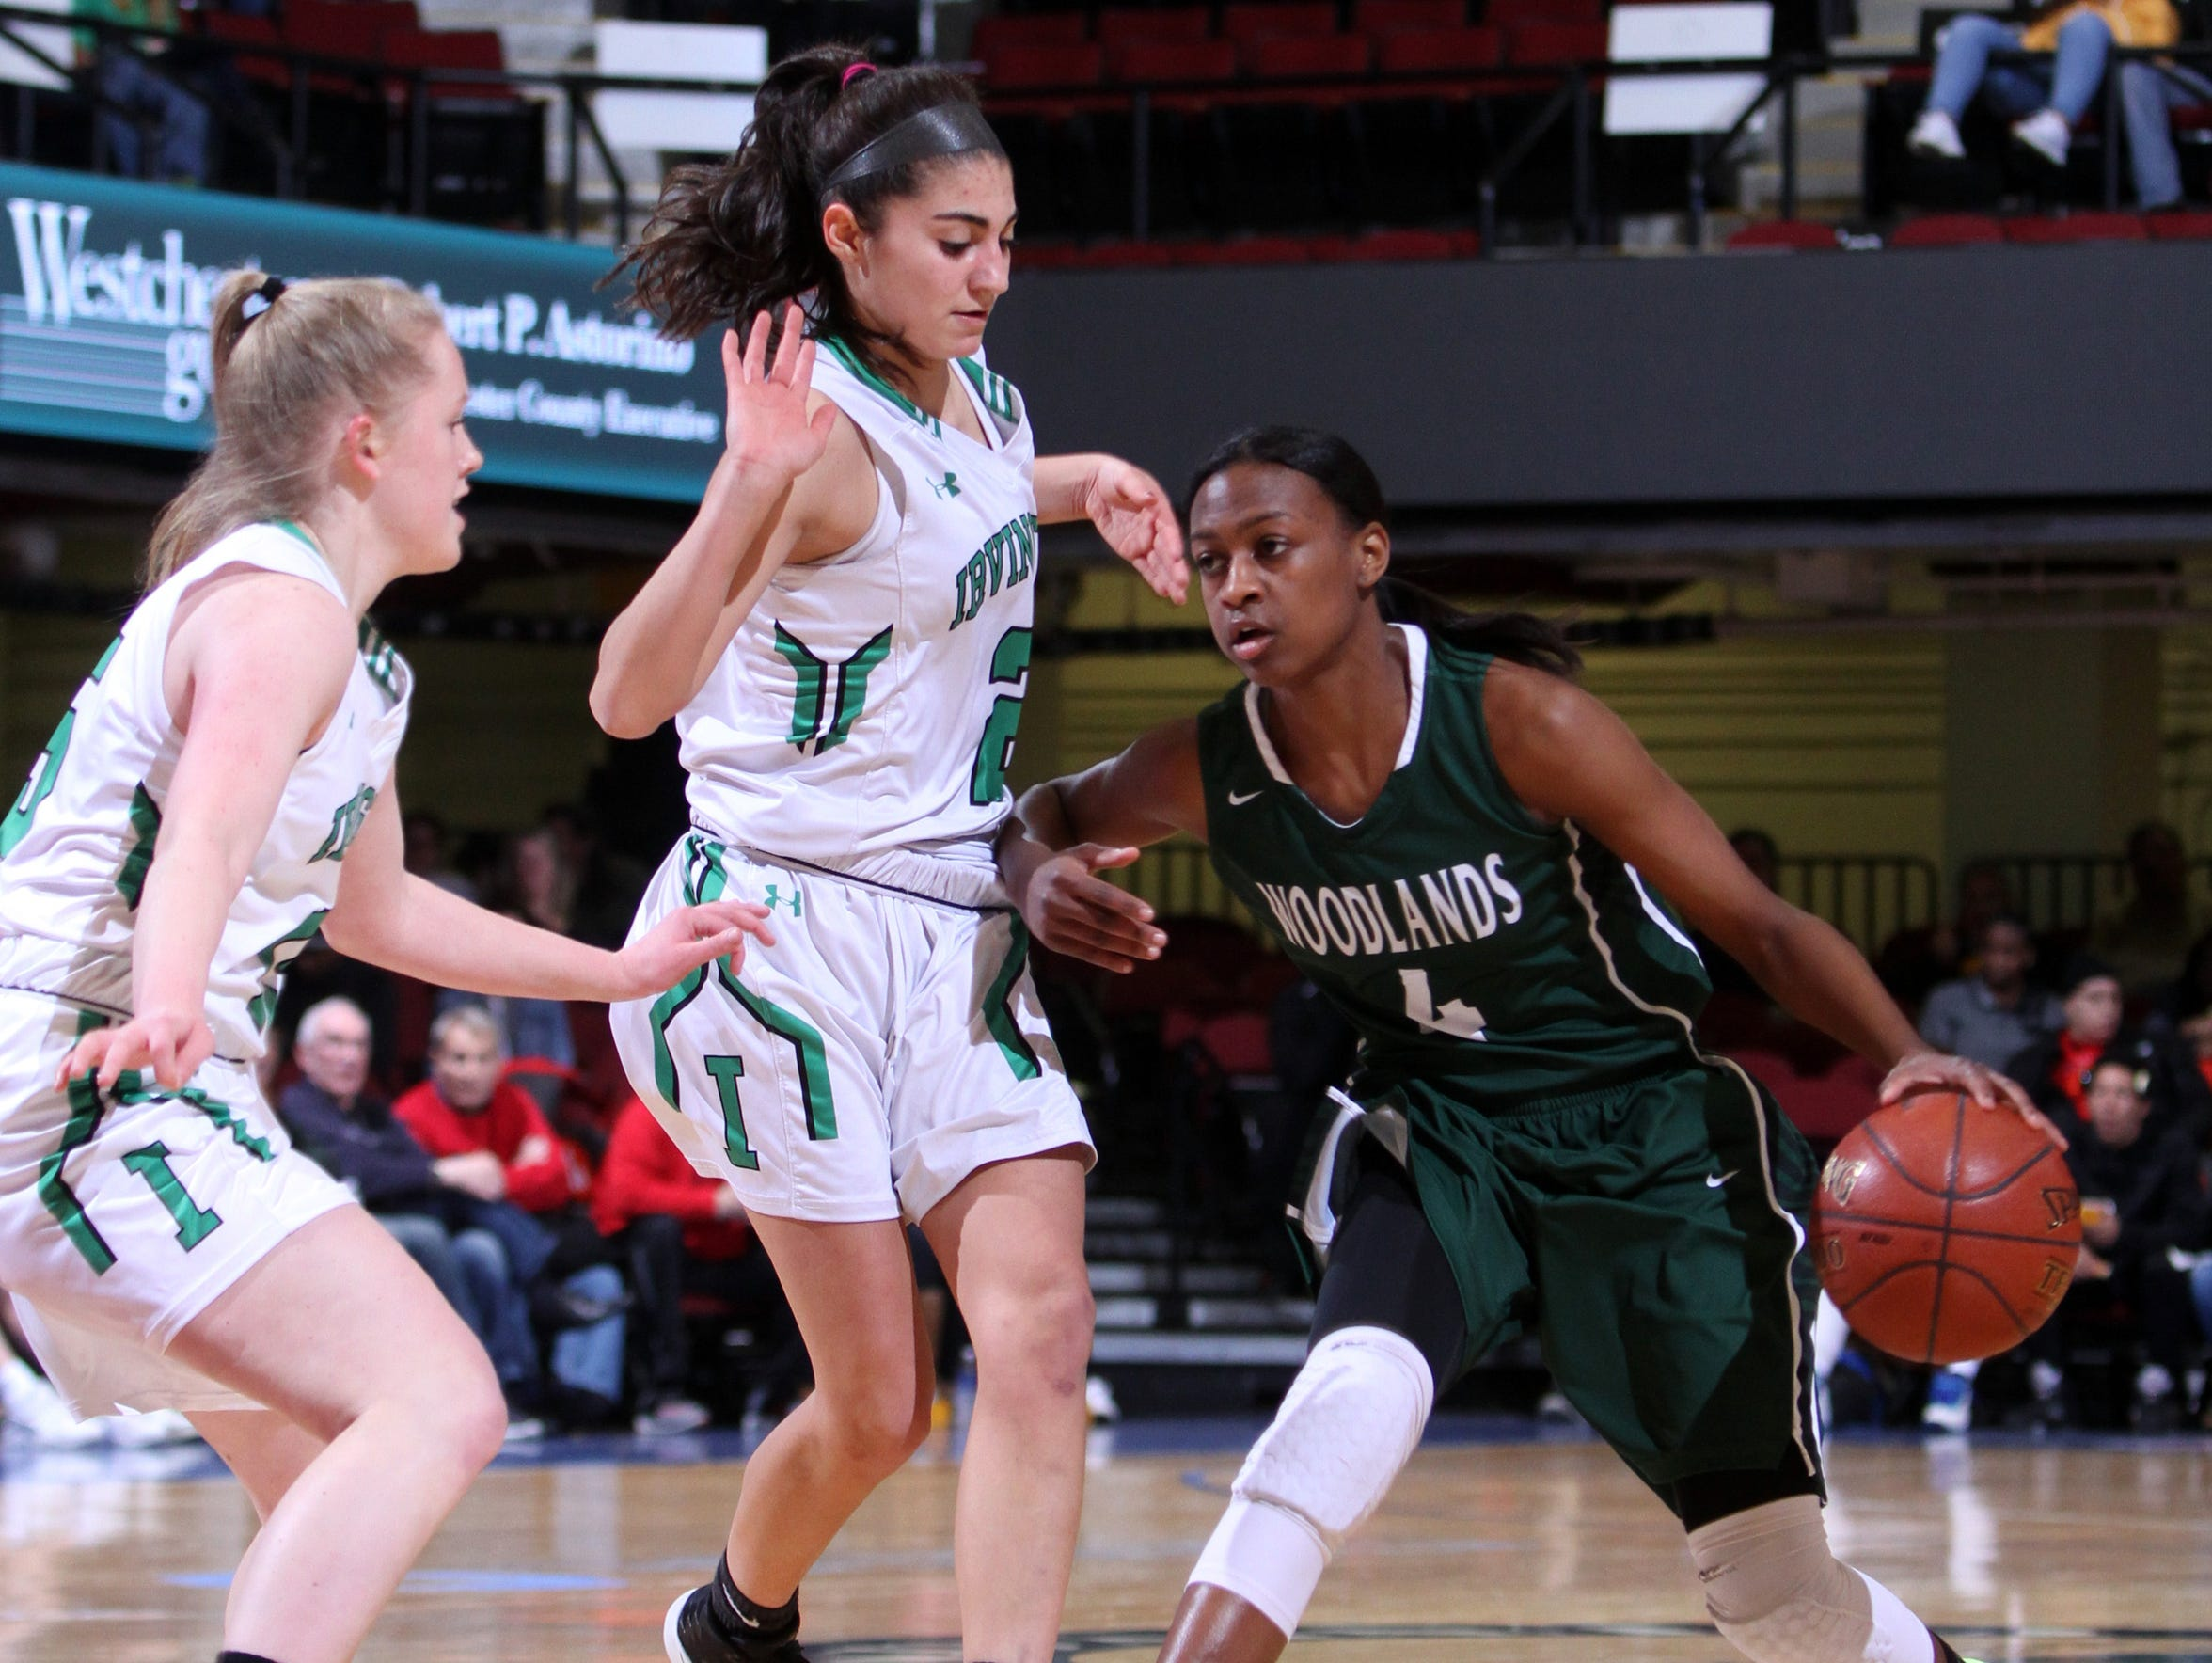 Woodlands' Teisha Hyman (right) is guarded by Irvington's